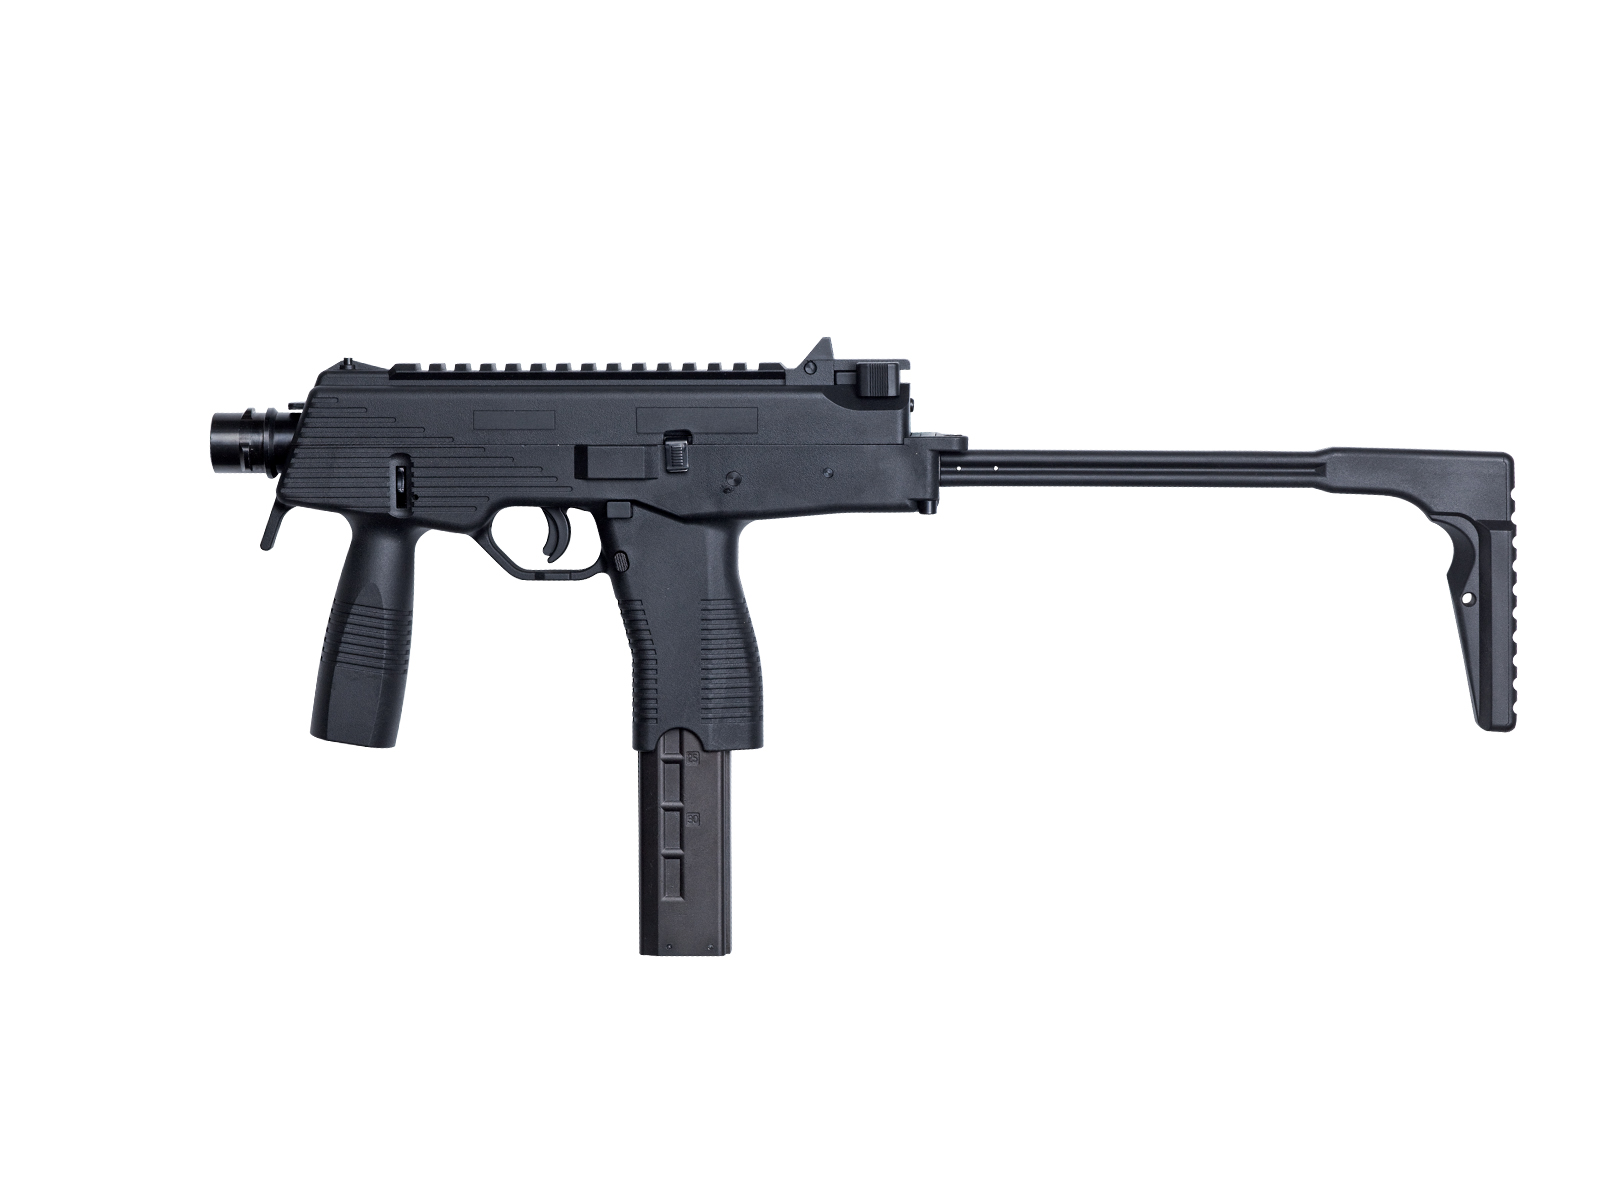 ASG MP9 A1, black product image